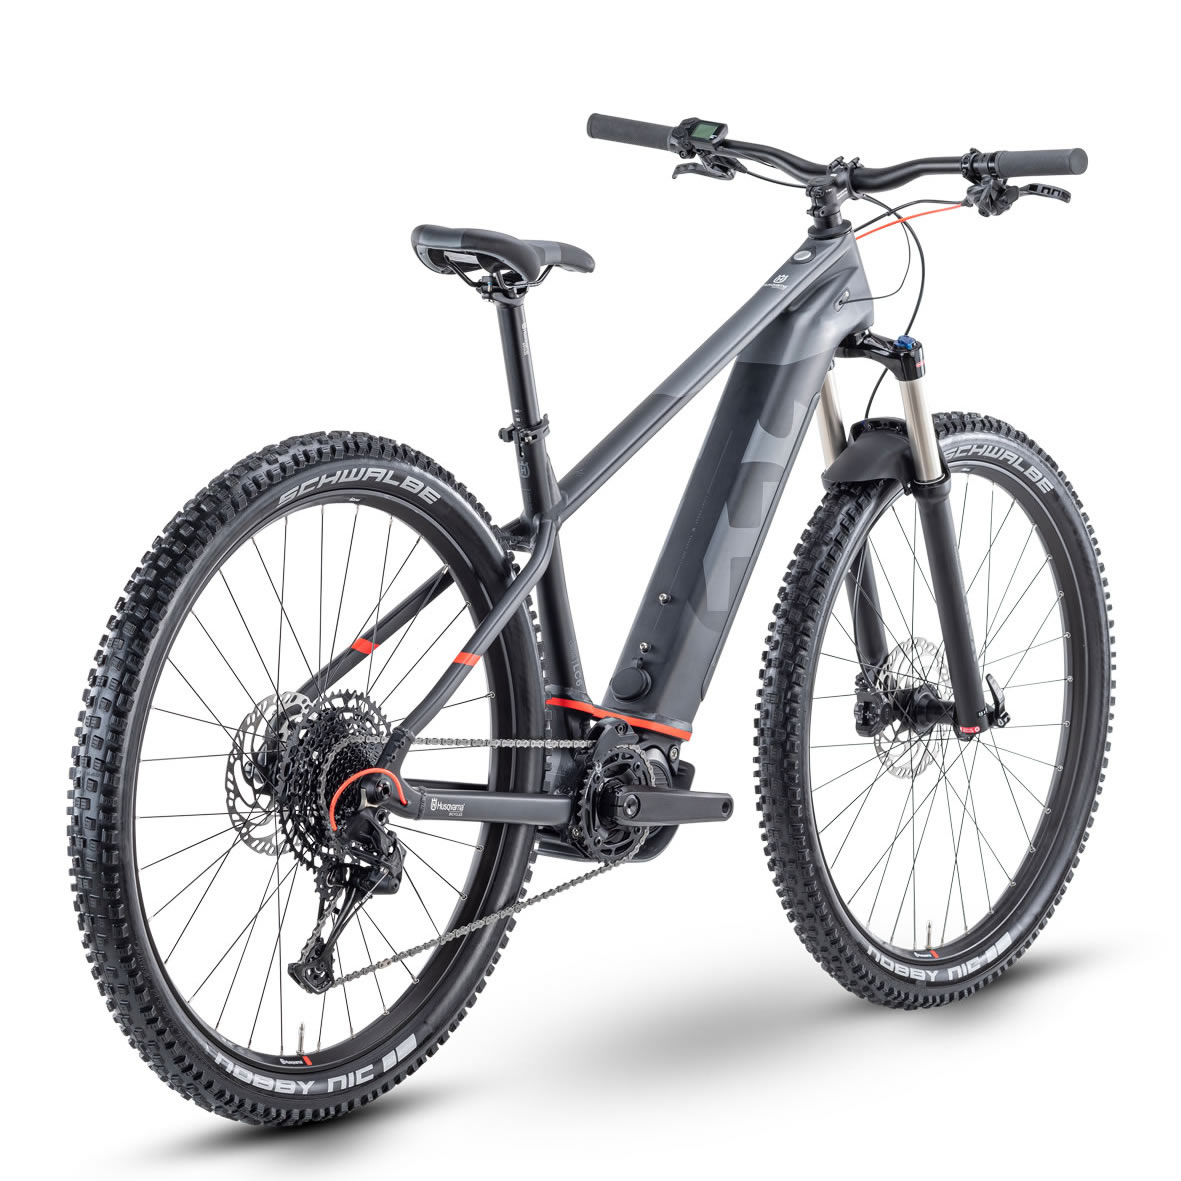 Husqvarna Light Cross 6 2021